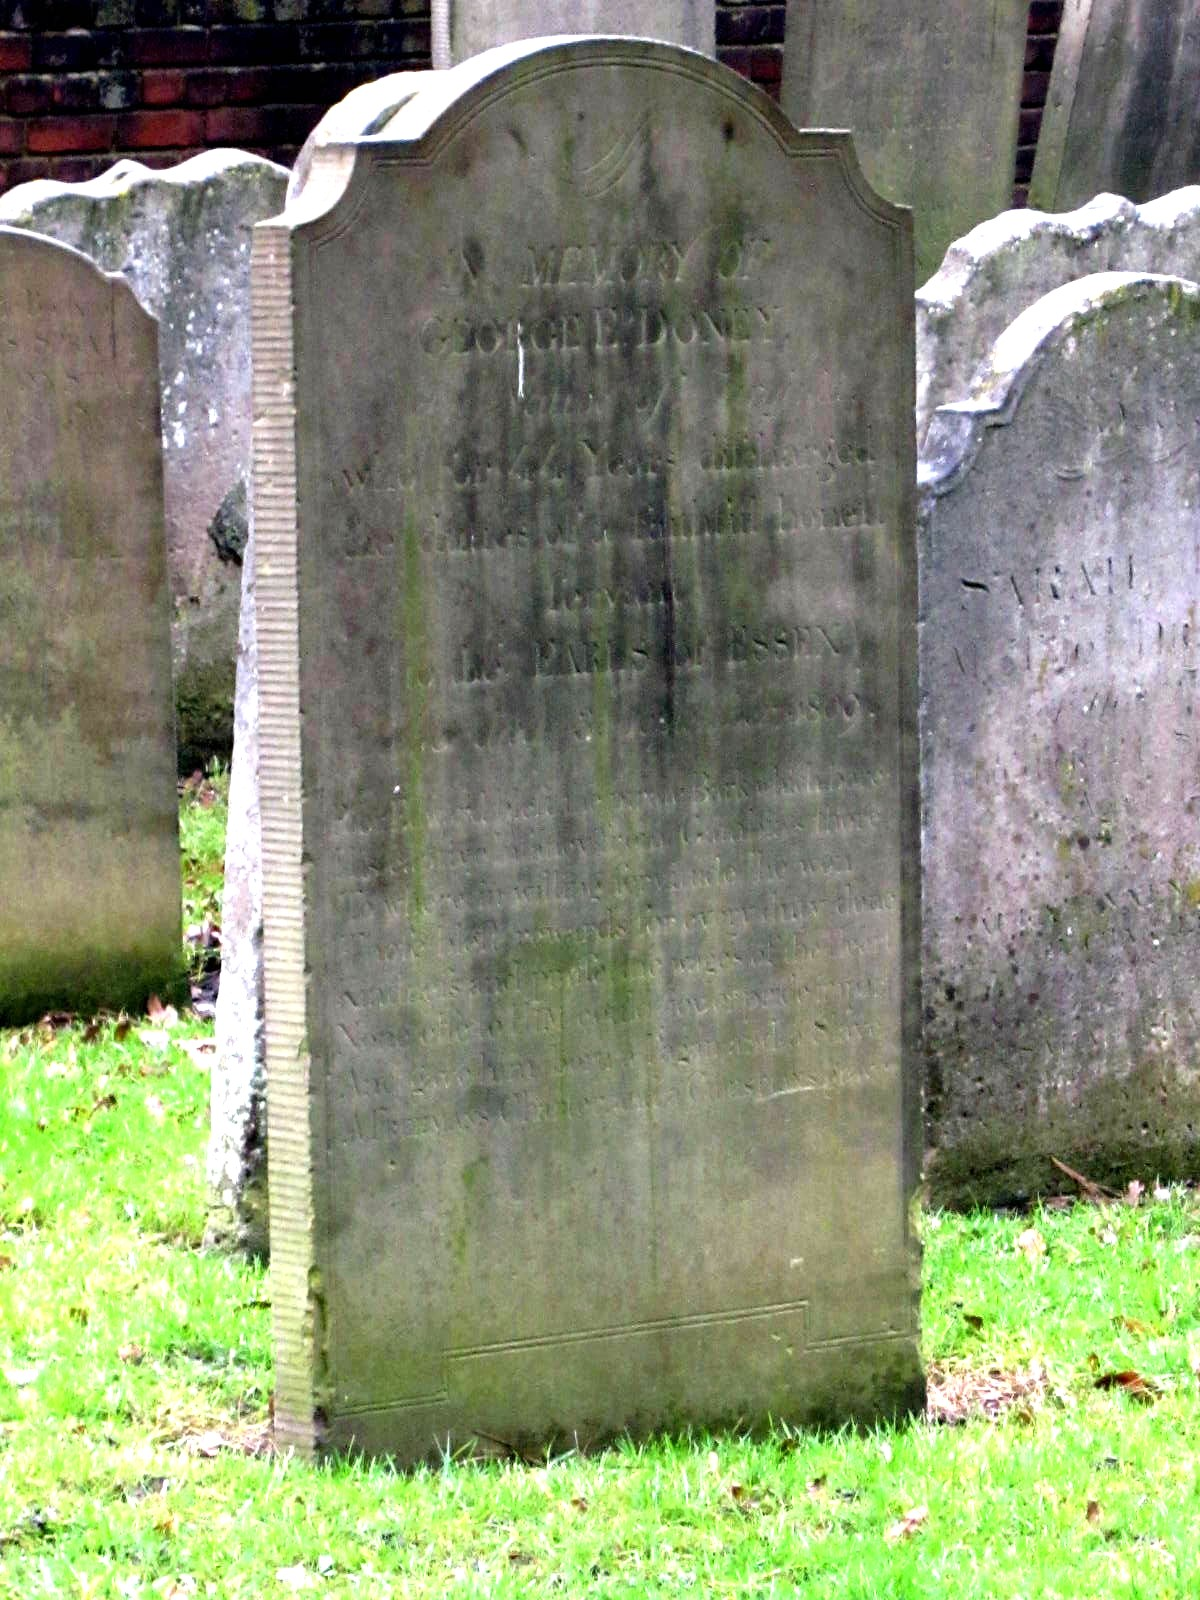 Grave of George Doney